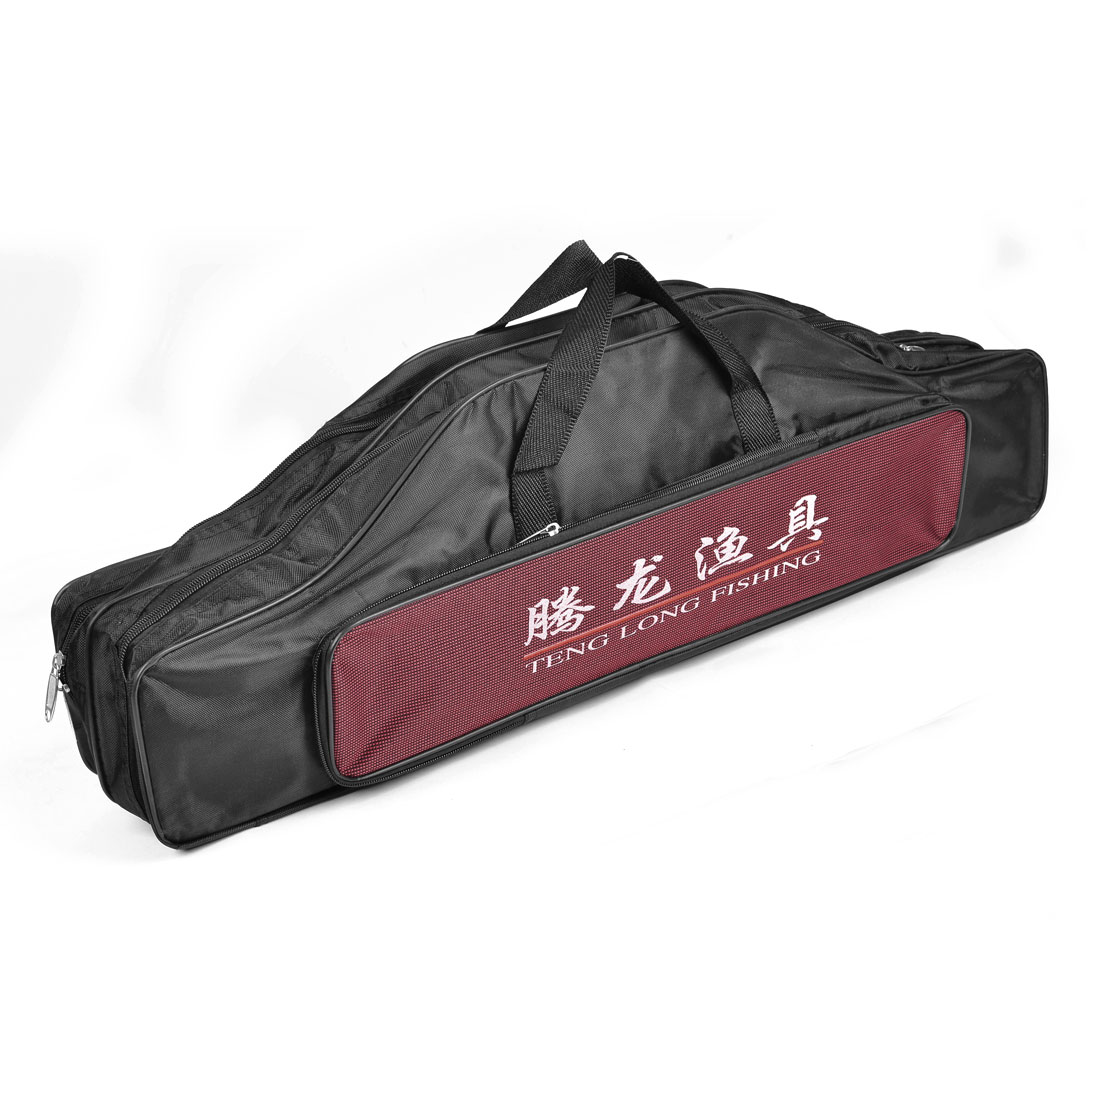 70cm Length Zippered 3 Compartment Nylon Angling Fishing Rod Pole Bag Black Red